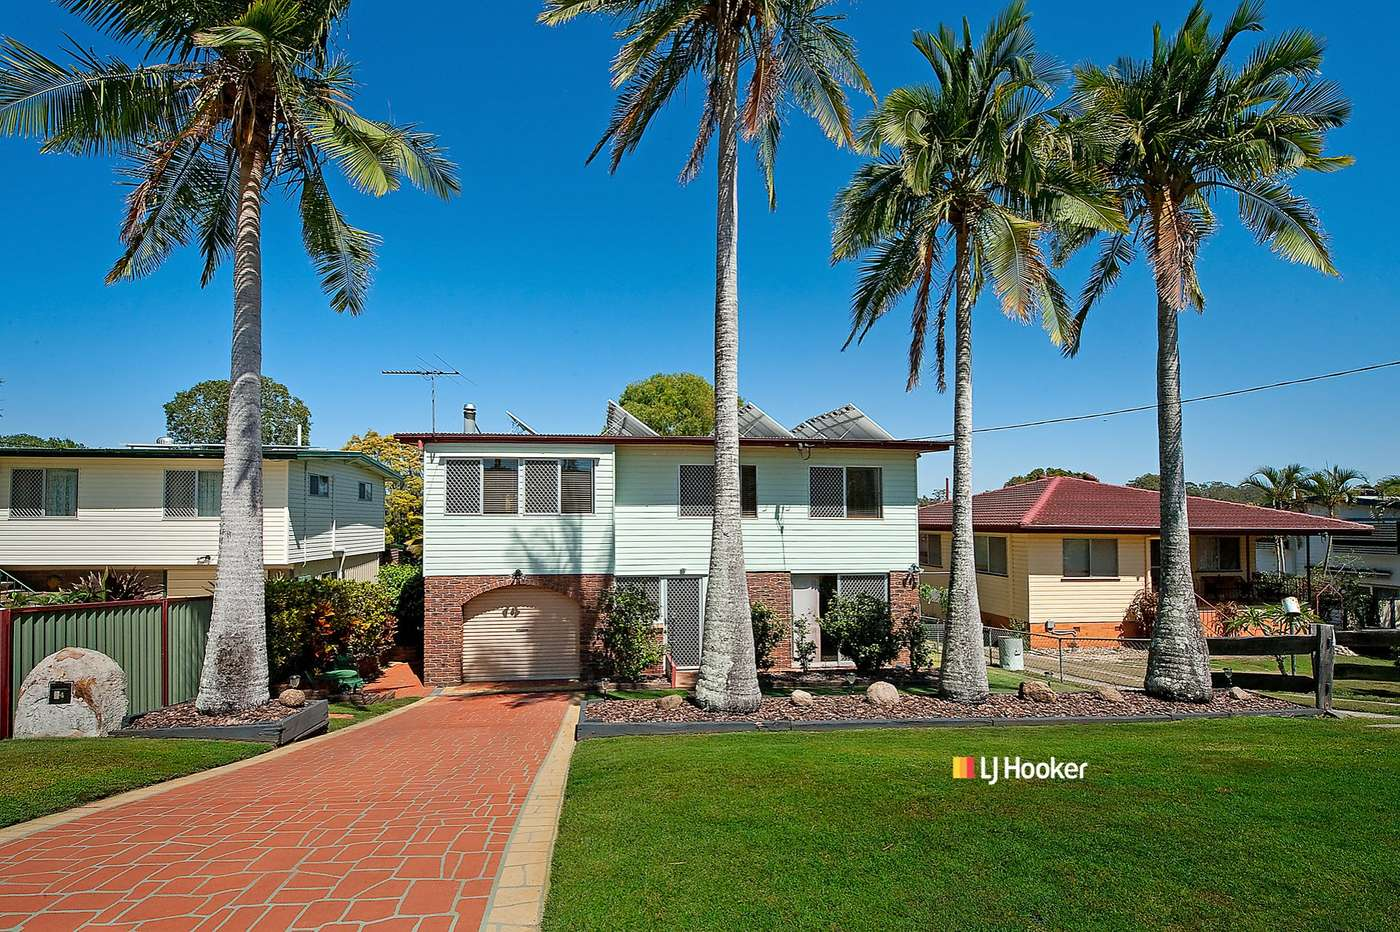 Main view of Homely house listing, 24 Glenmore Street, Kallangur, QLD 4503